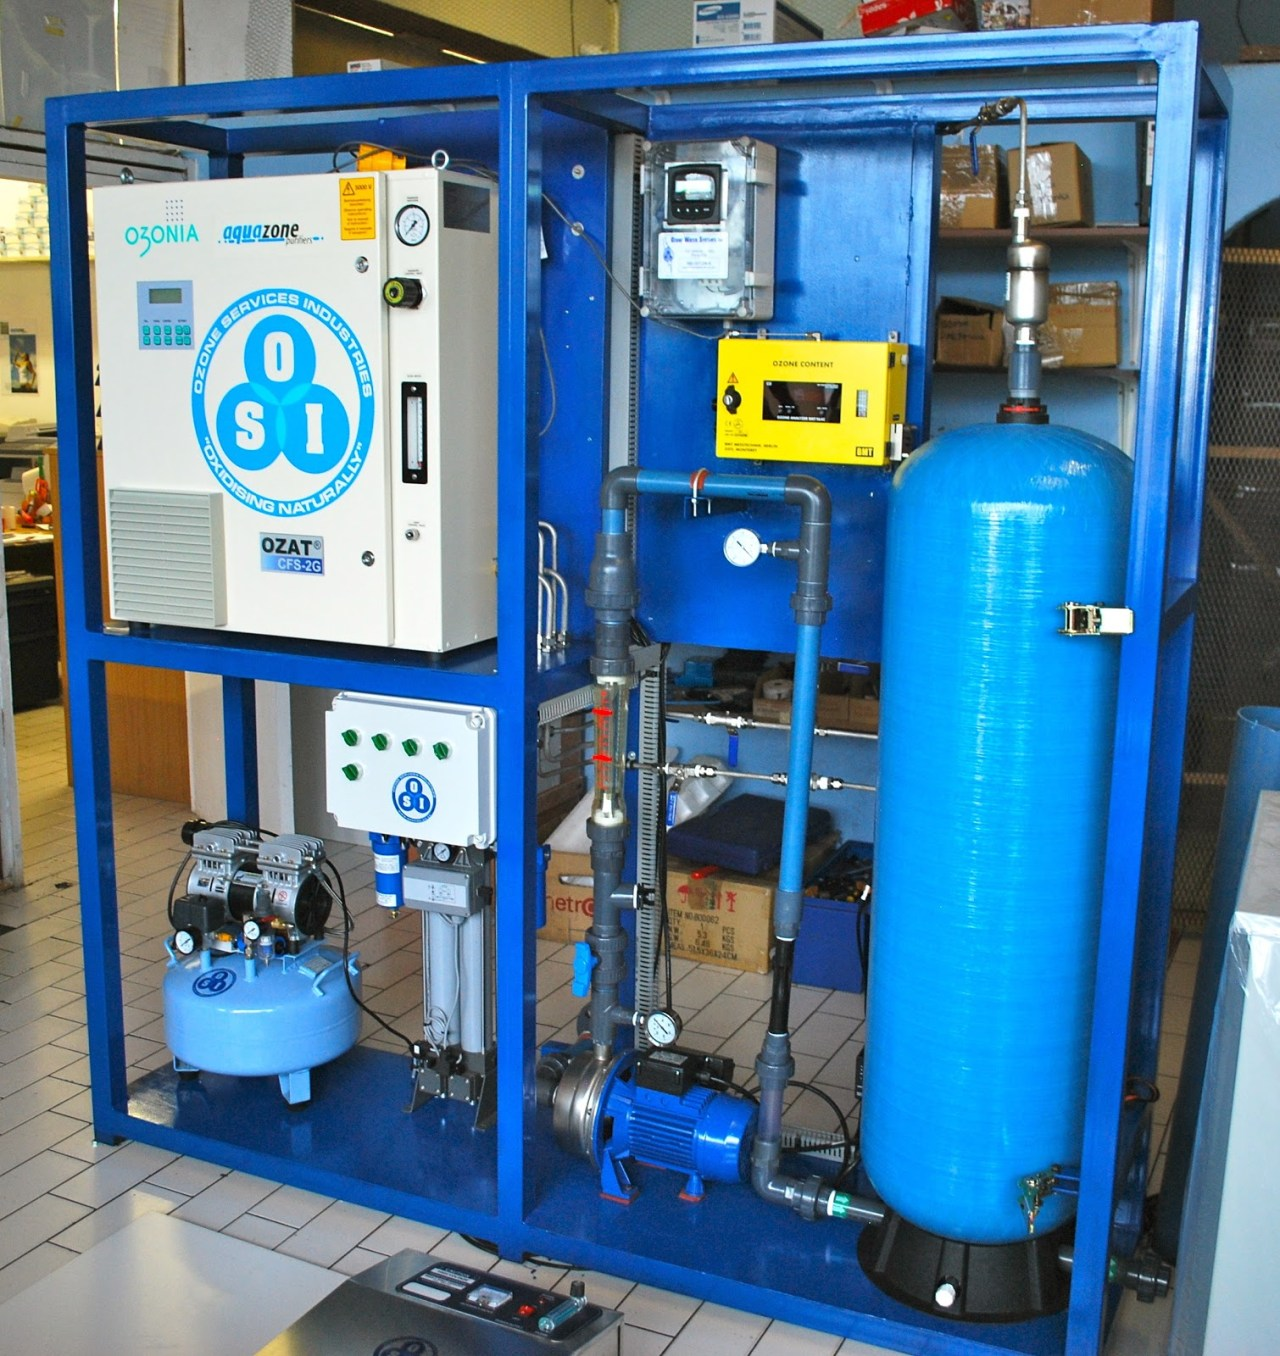 Aquazone Disinfection Plant